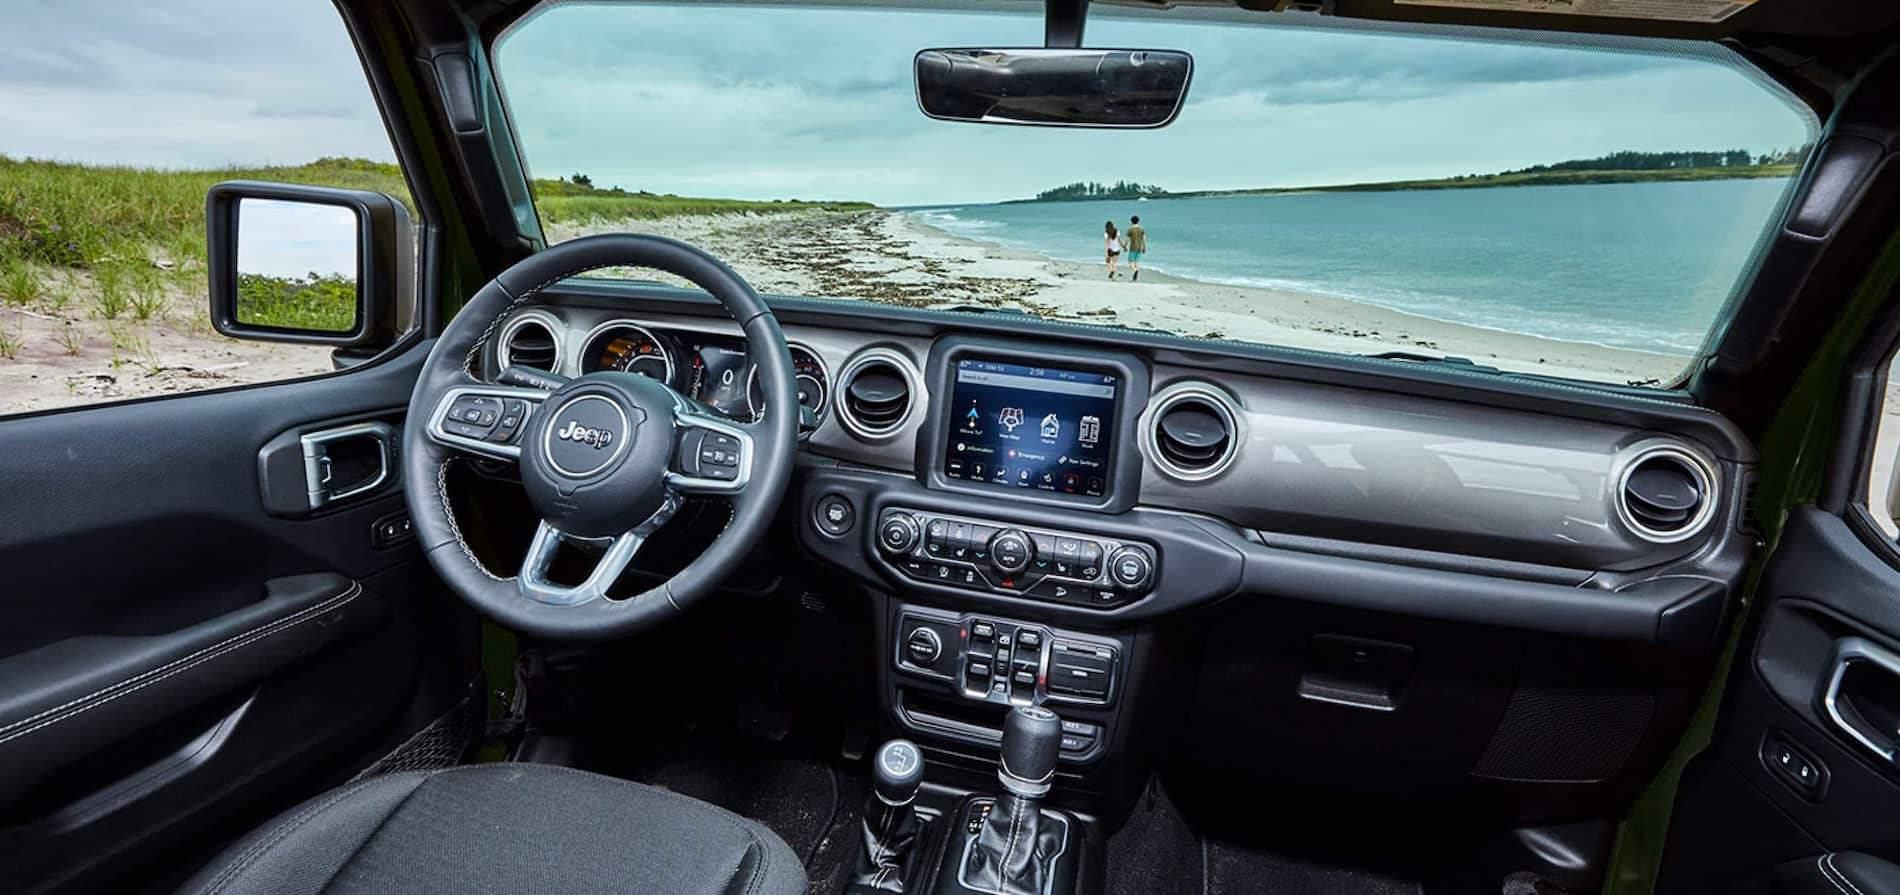 2021 Jeep wrangler Interior available in Salisbury MD